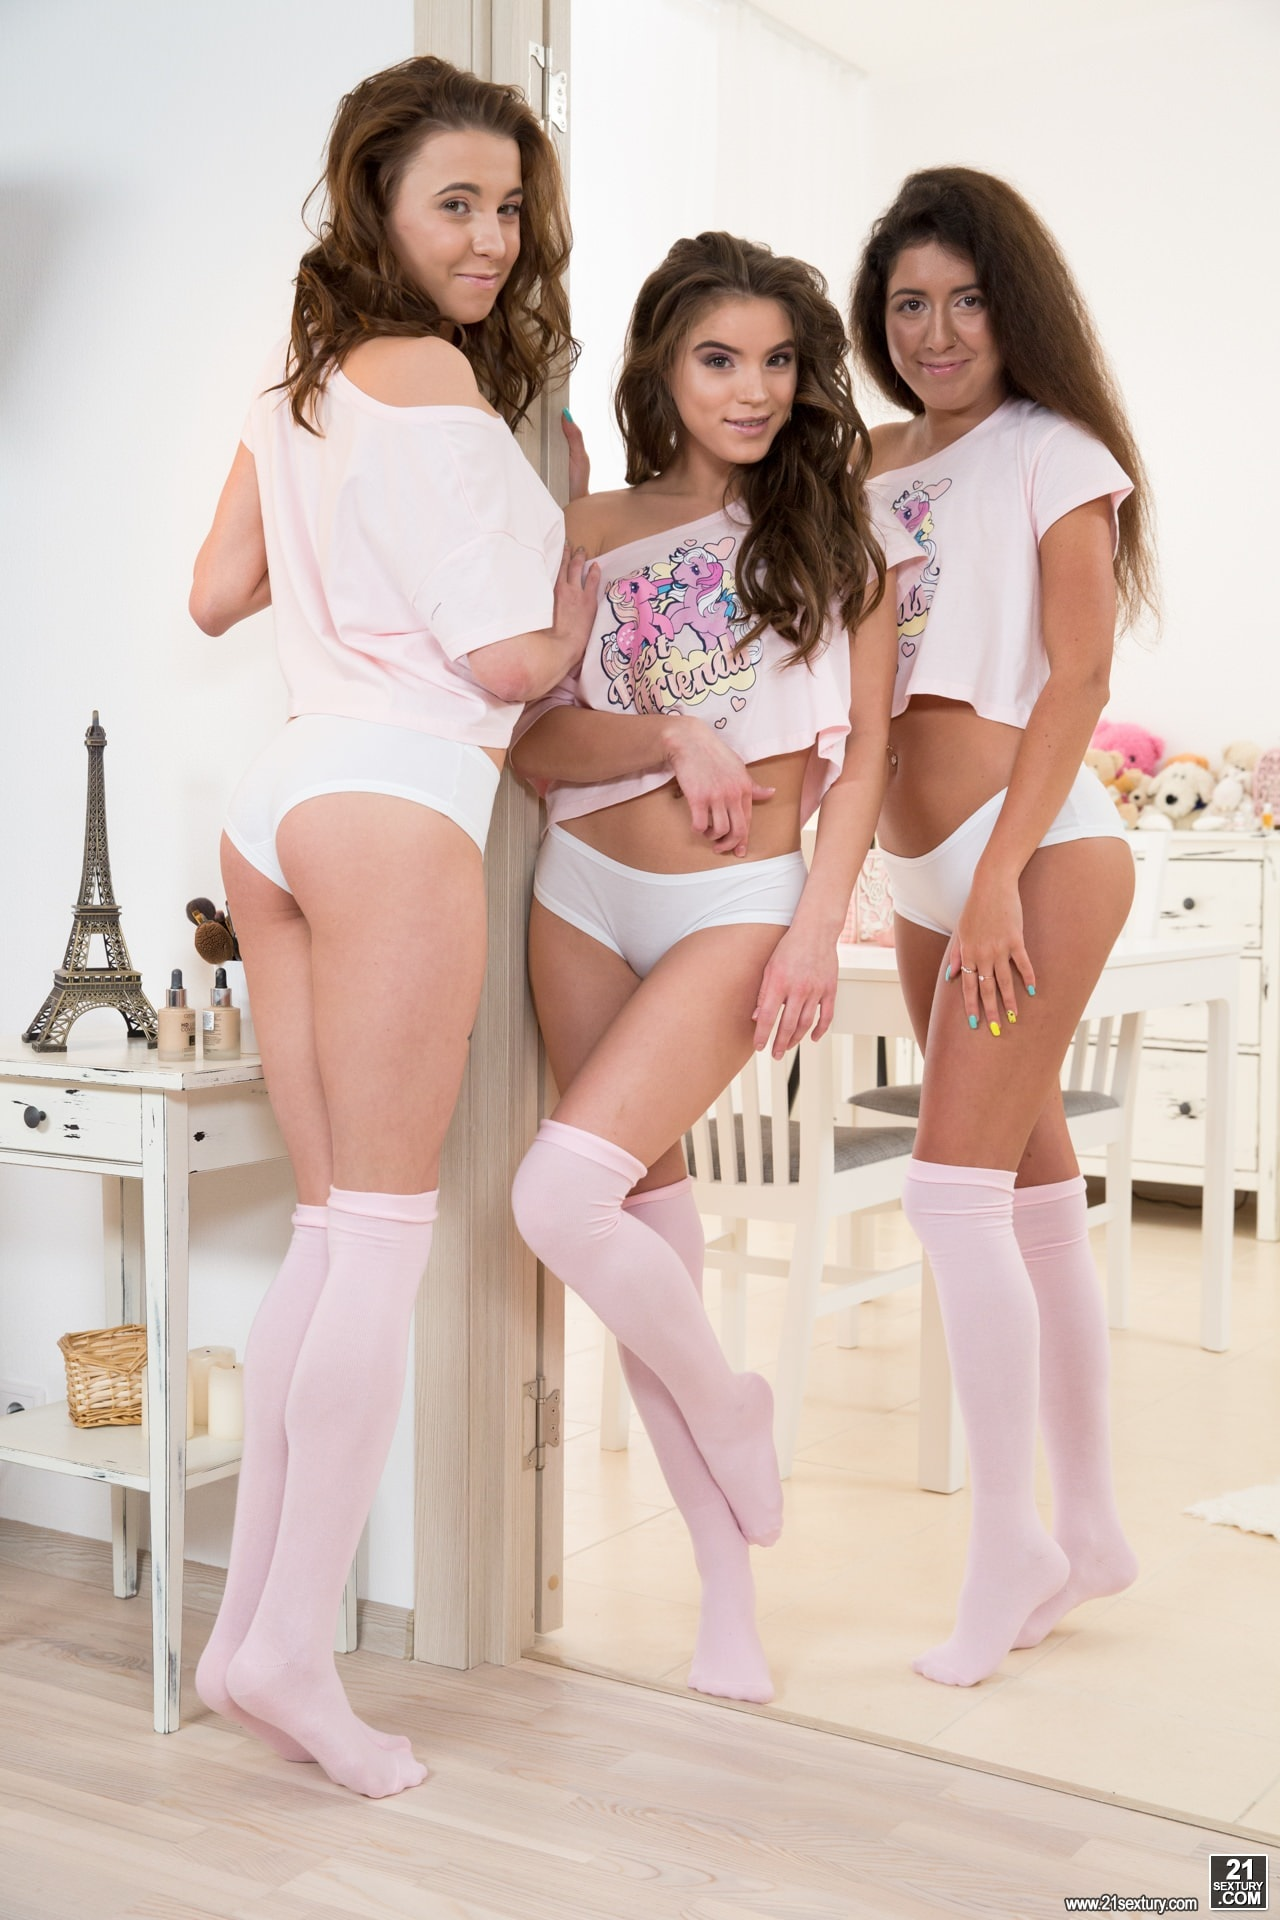 21Sextury 'Pink, Cute and Naughty' starring Evelina Darling (Photo 1)